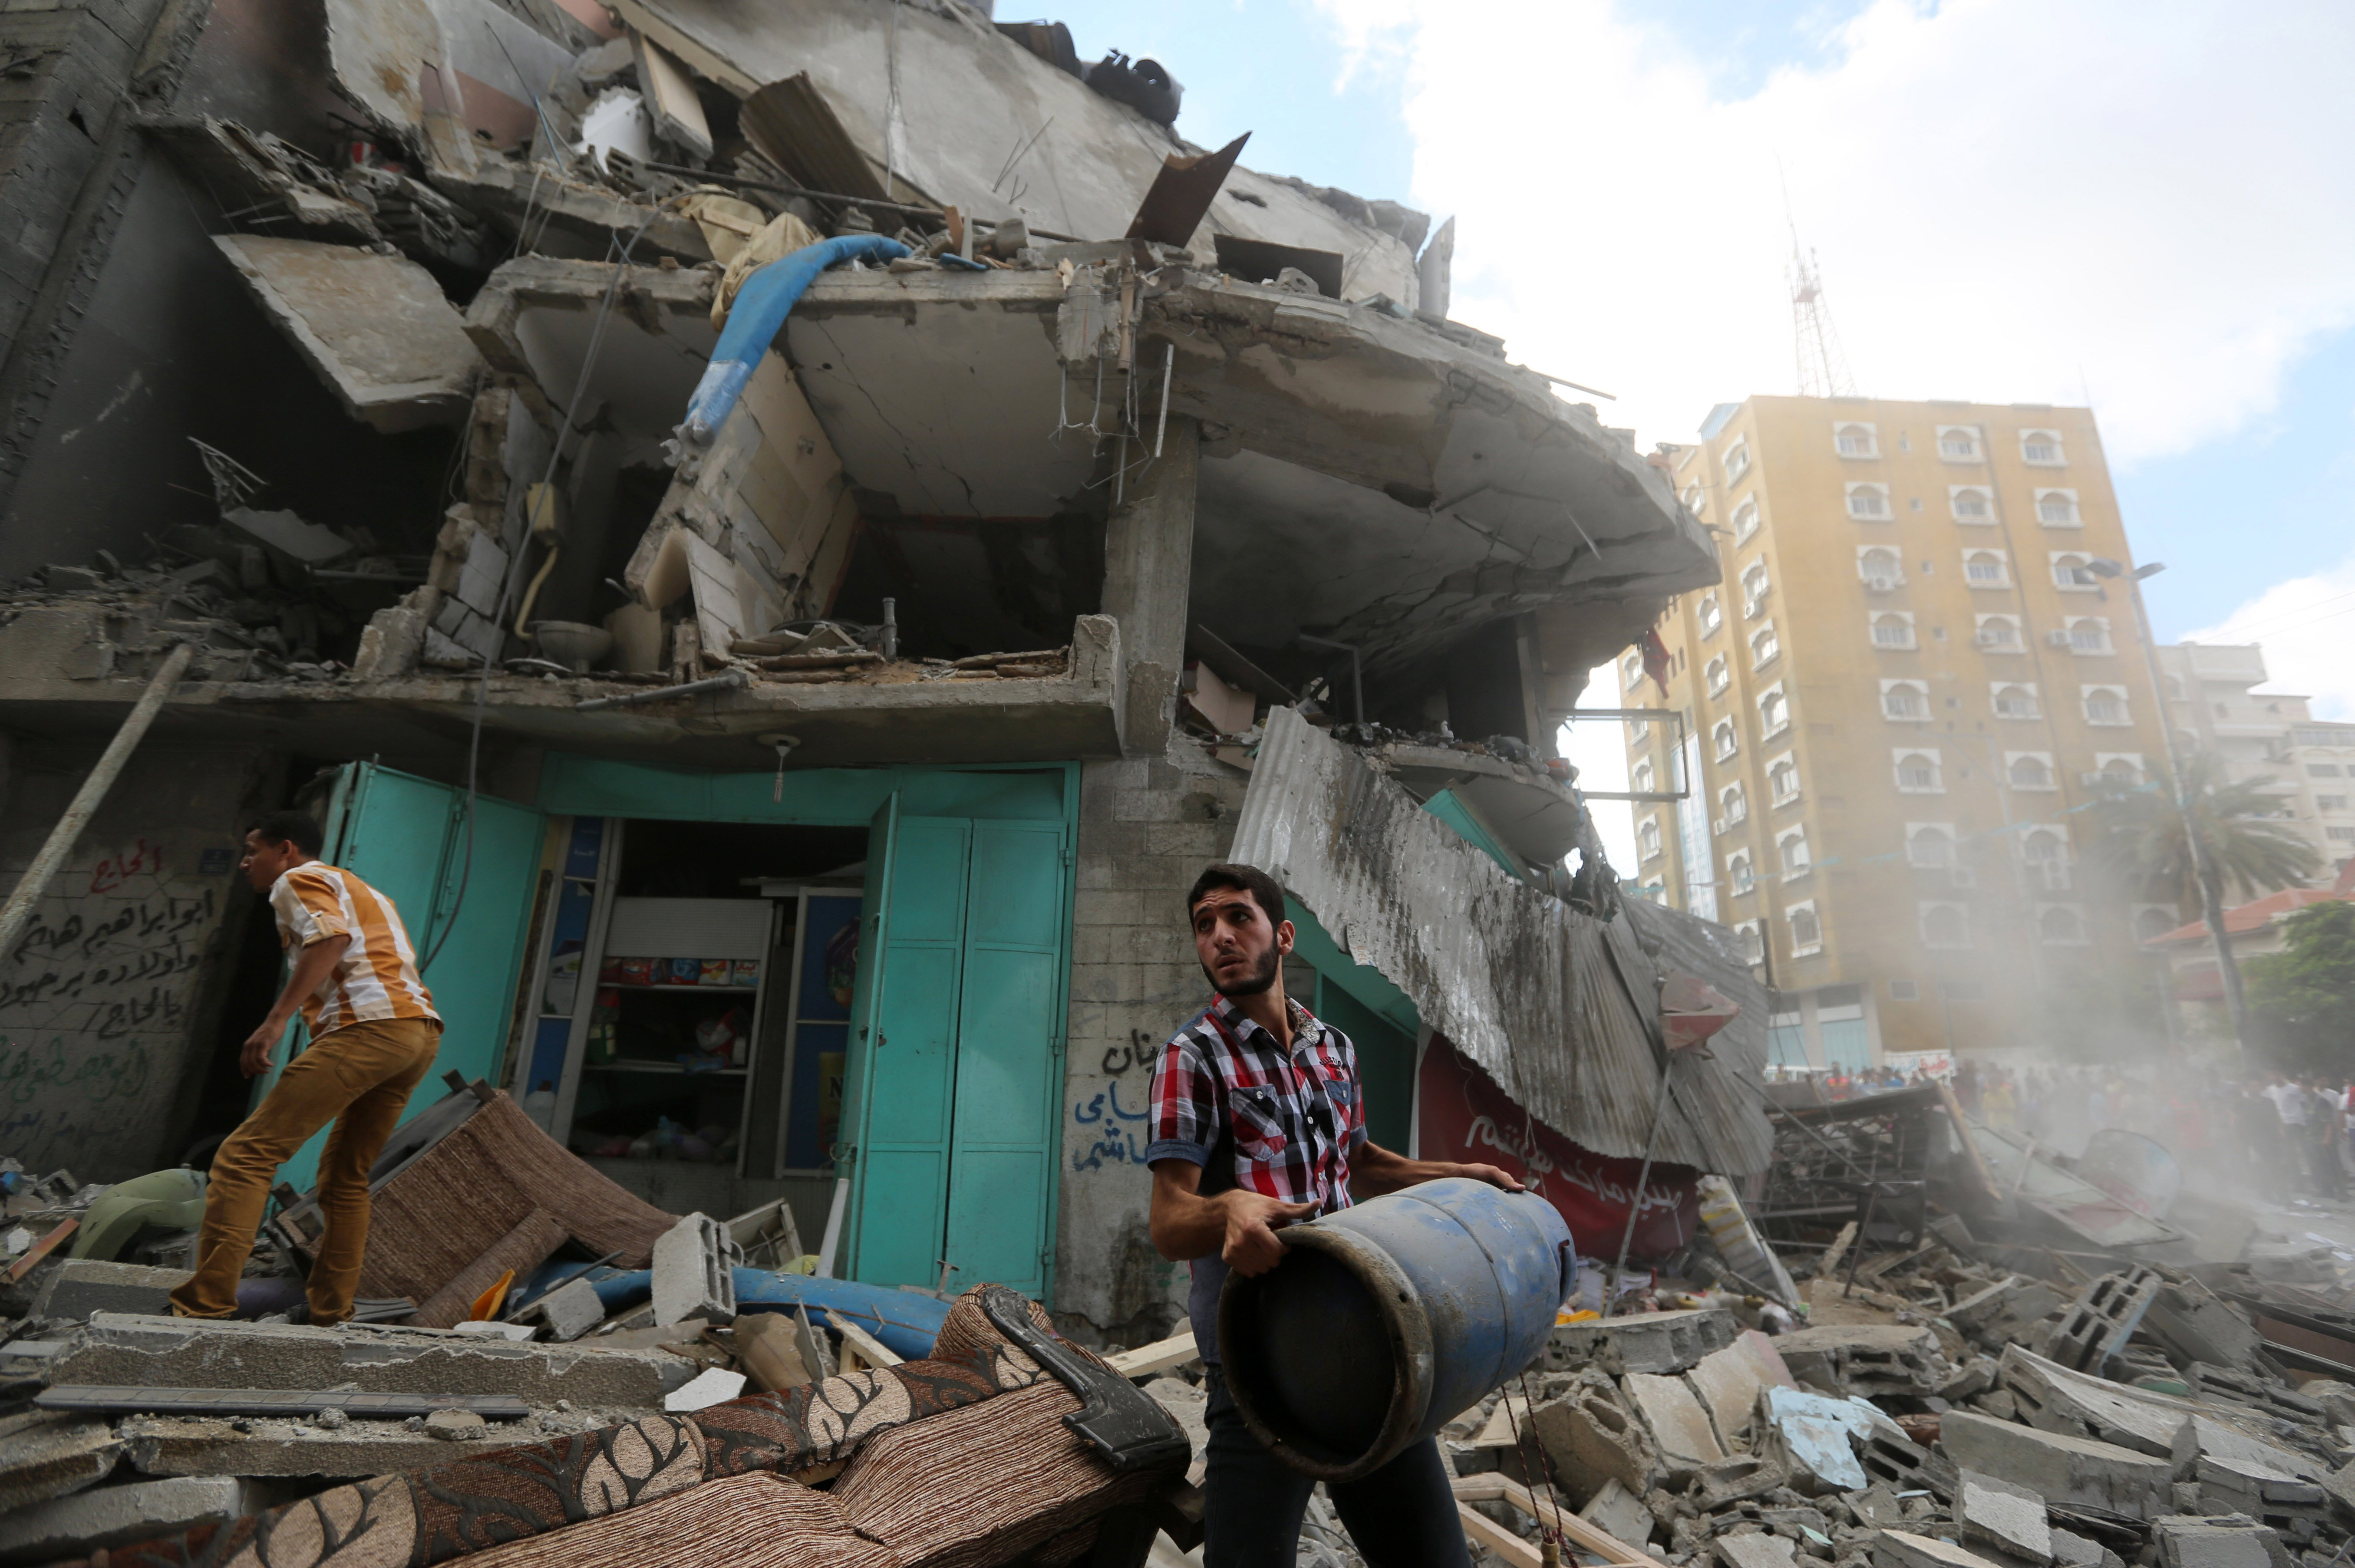 A Palestinian salvages rubble from a destroyed home after an apartment building was hit by an Israeli missile strike in Gaza City on July 18, 2014.